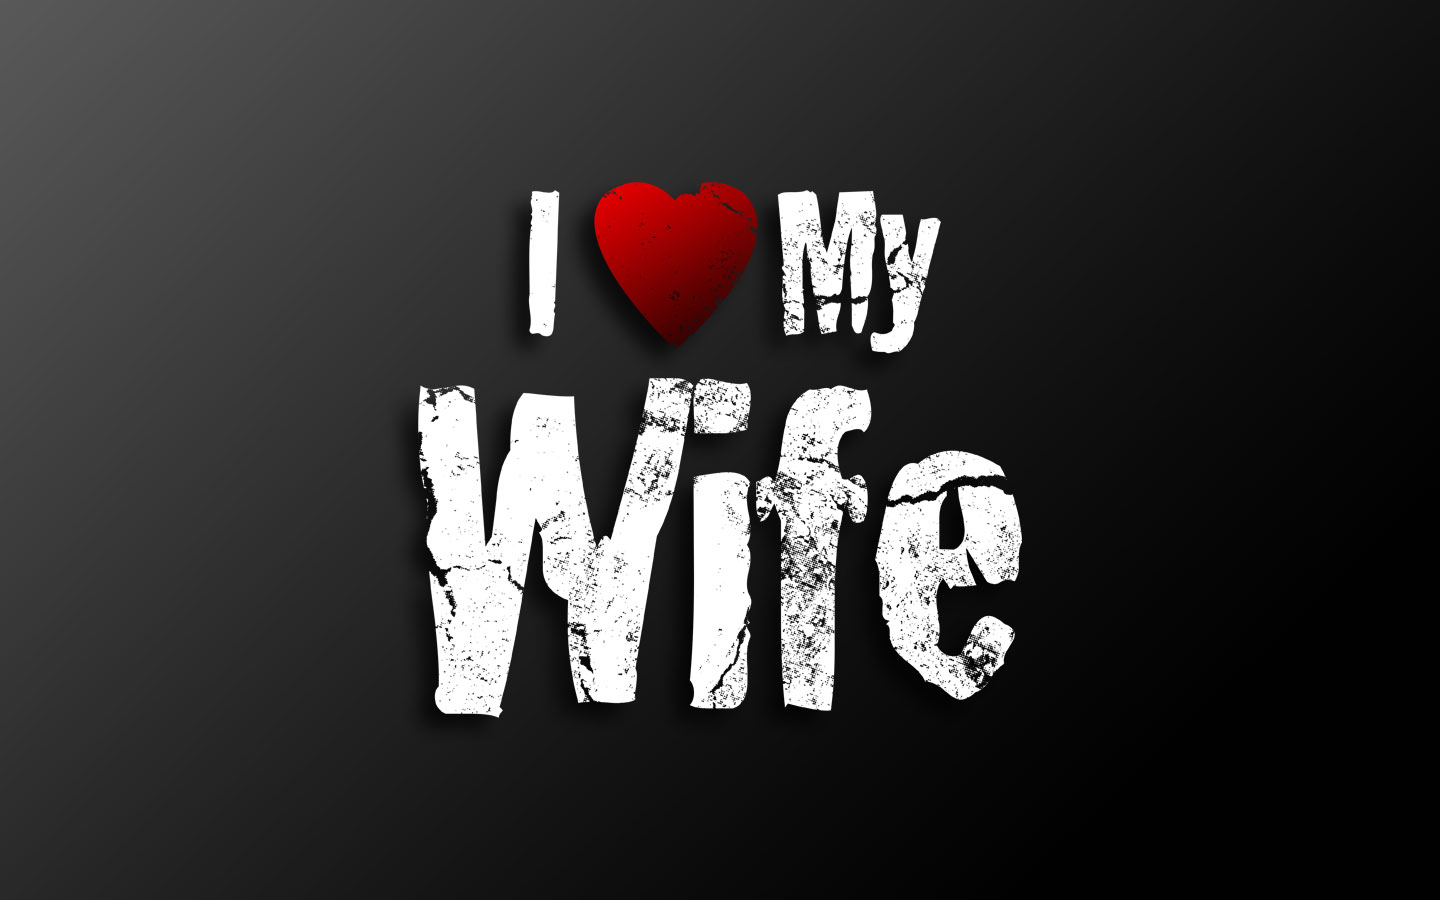 Husband Wife Love Wallpaper Images : I Love My Wife Wallpaper - christian Wallpapers and Backgrounds